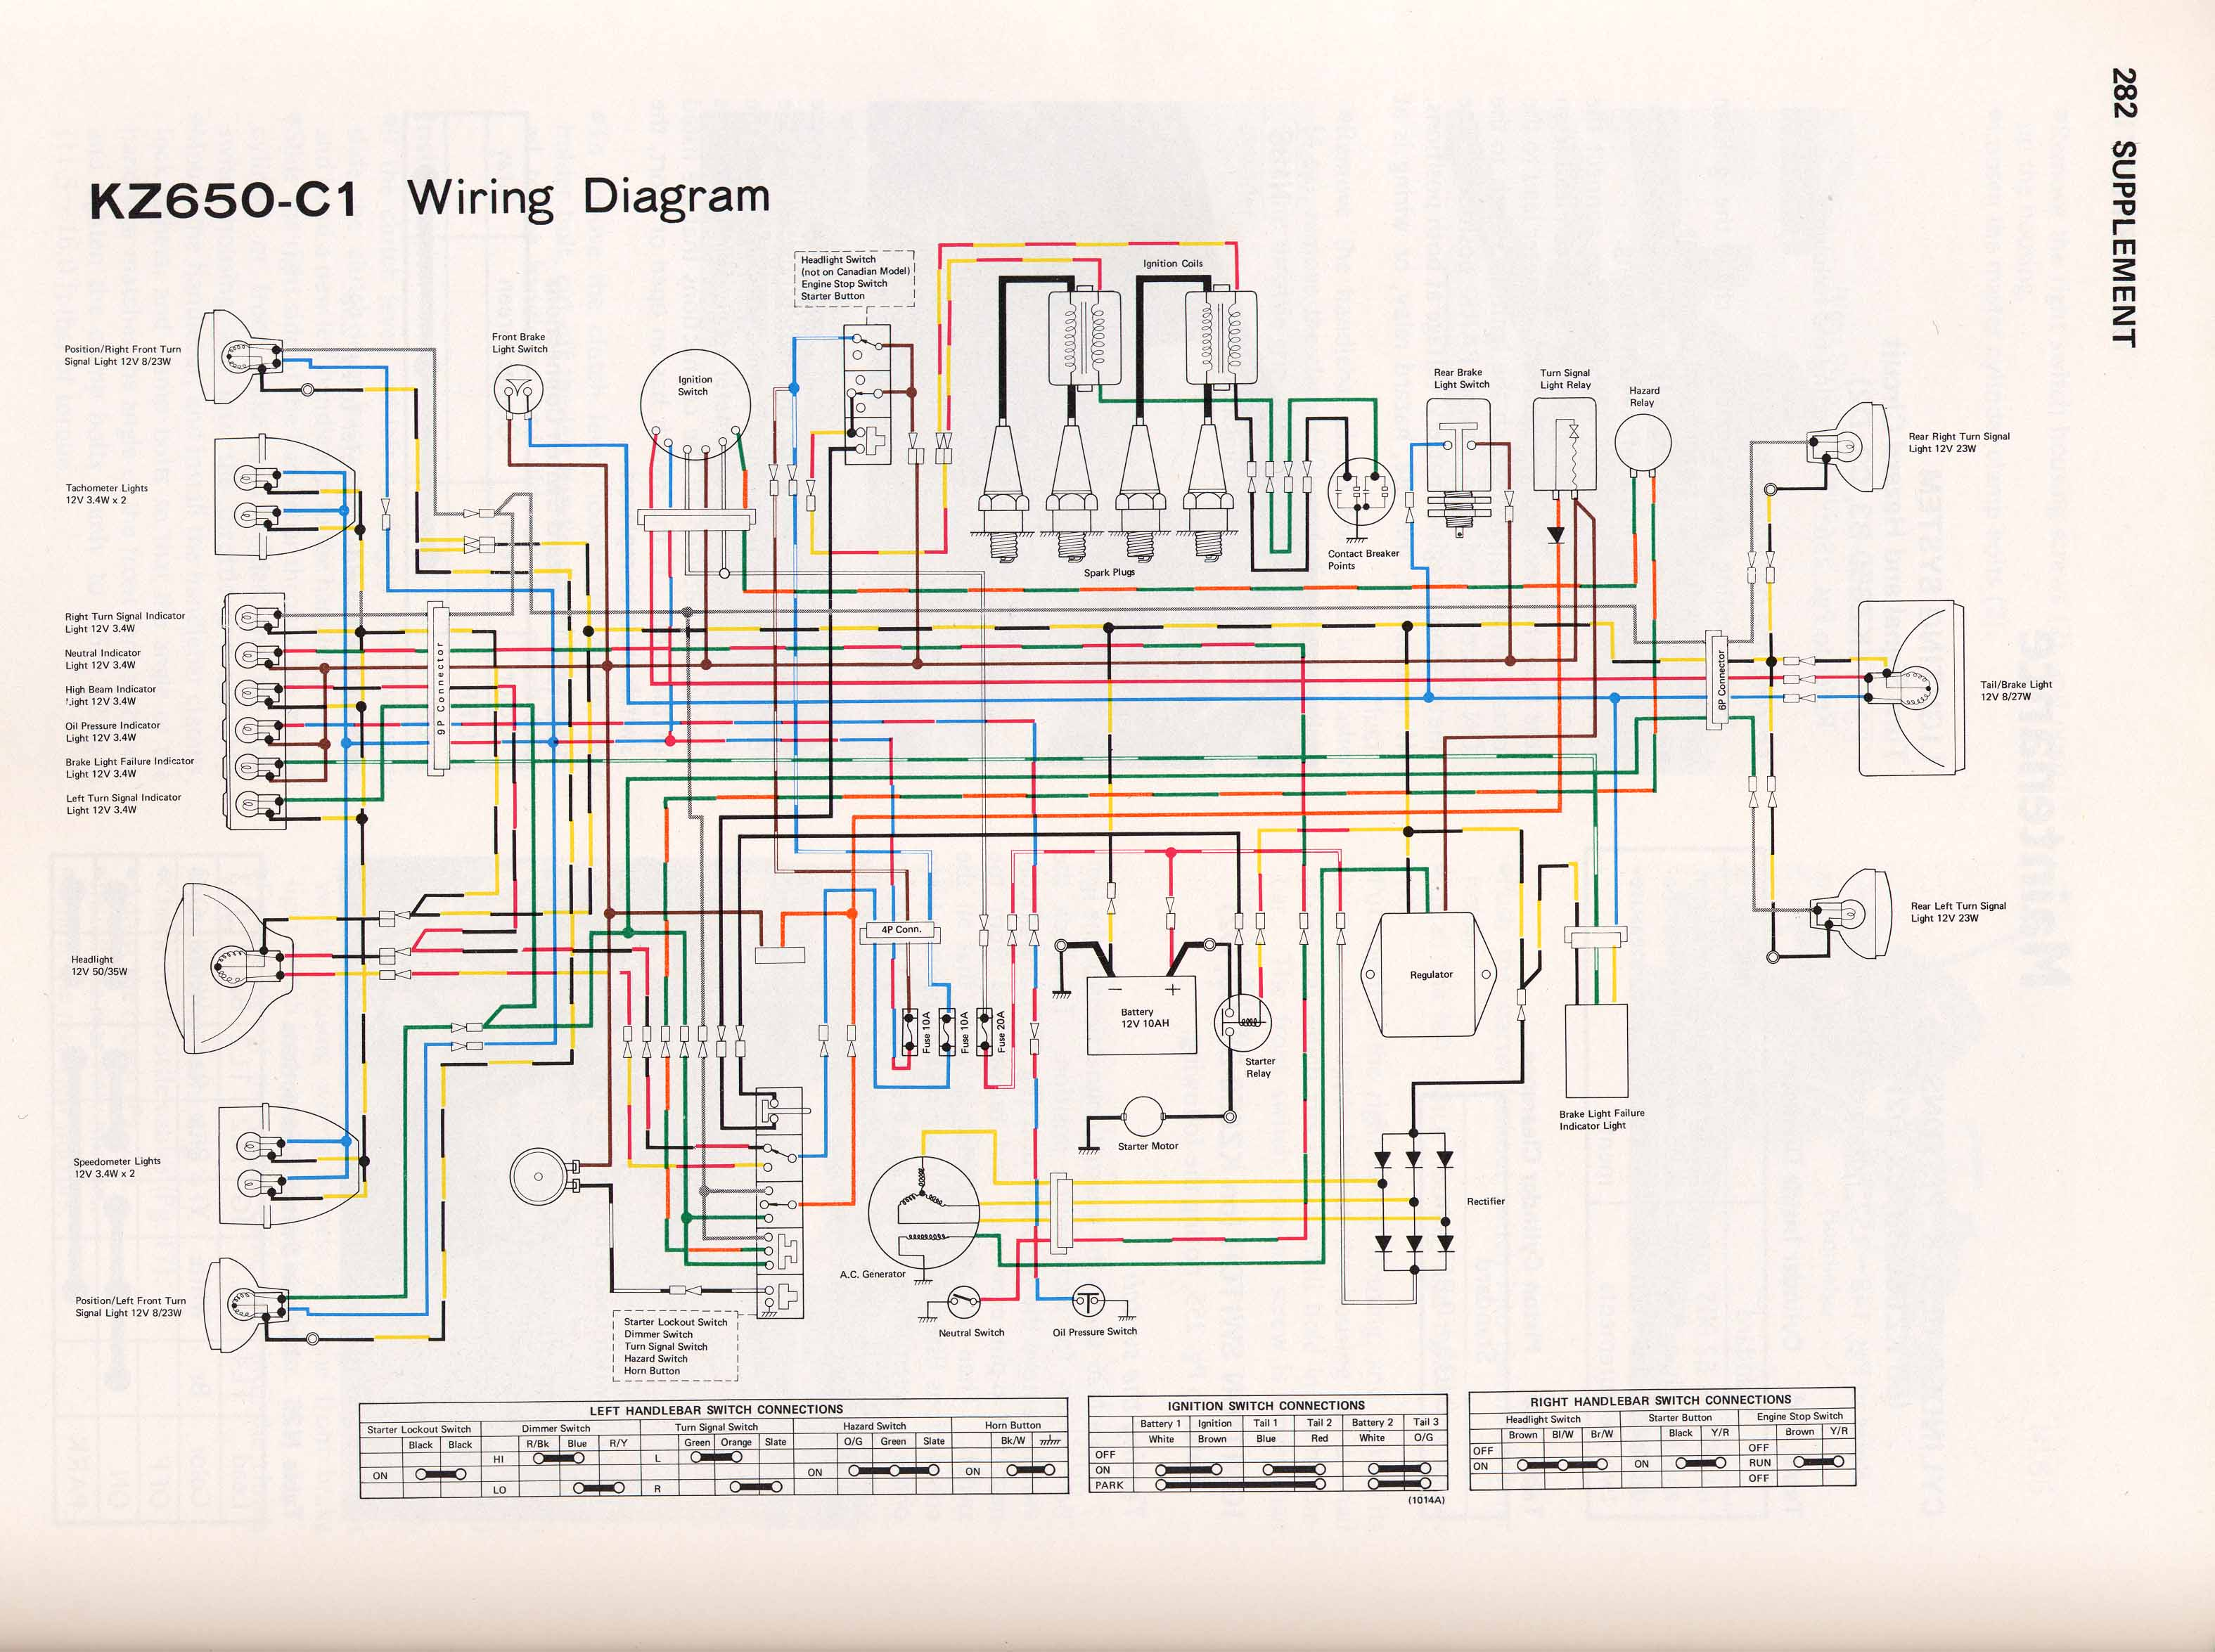 Dimmer Switch Wiring Diagram Usa from diagrams.kz650.info